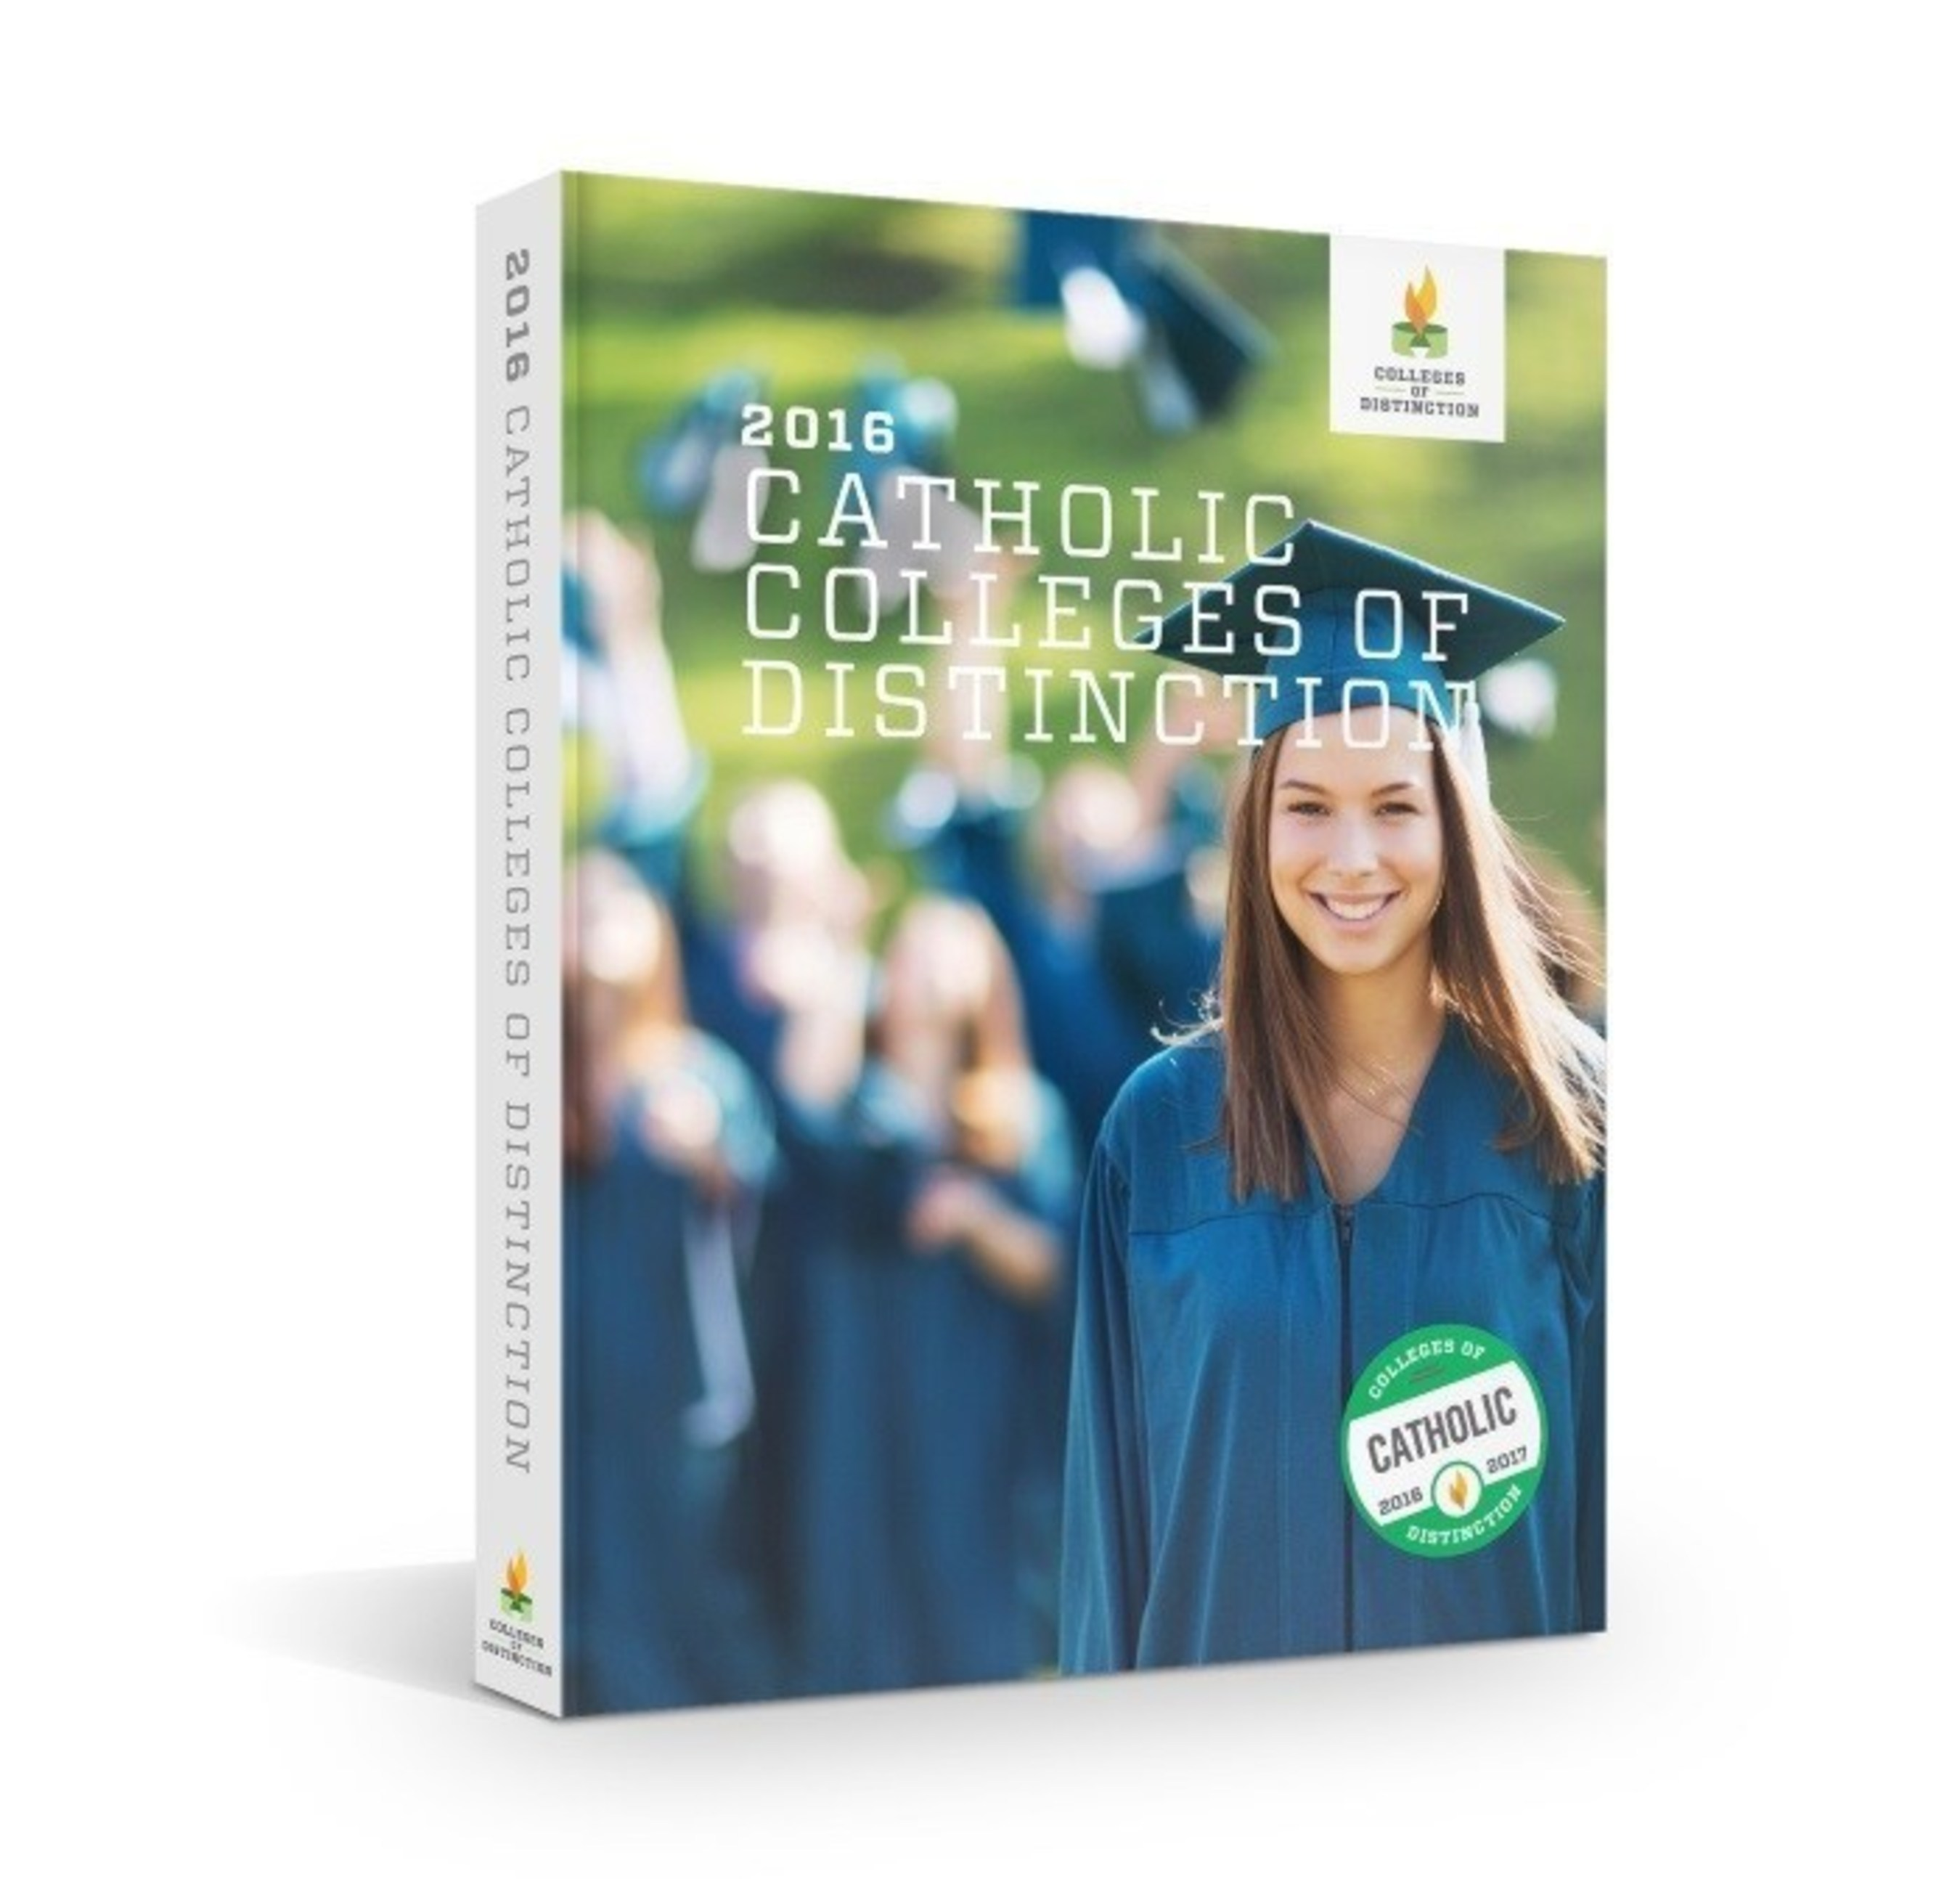 """The """"Catholic Colleges of Distinction 2016"""" guidebook highlights top Catholic colleges in the country."""